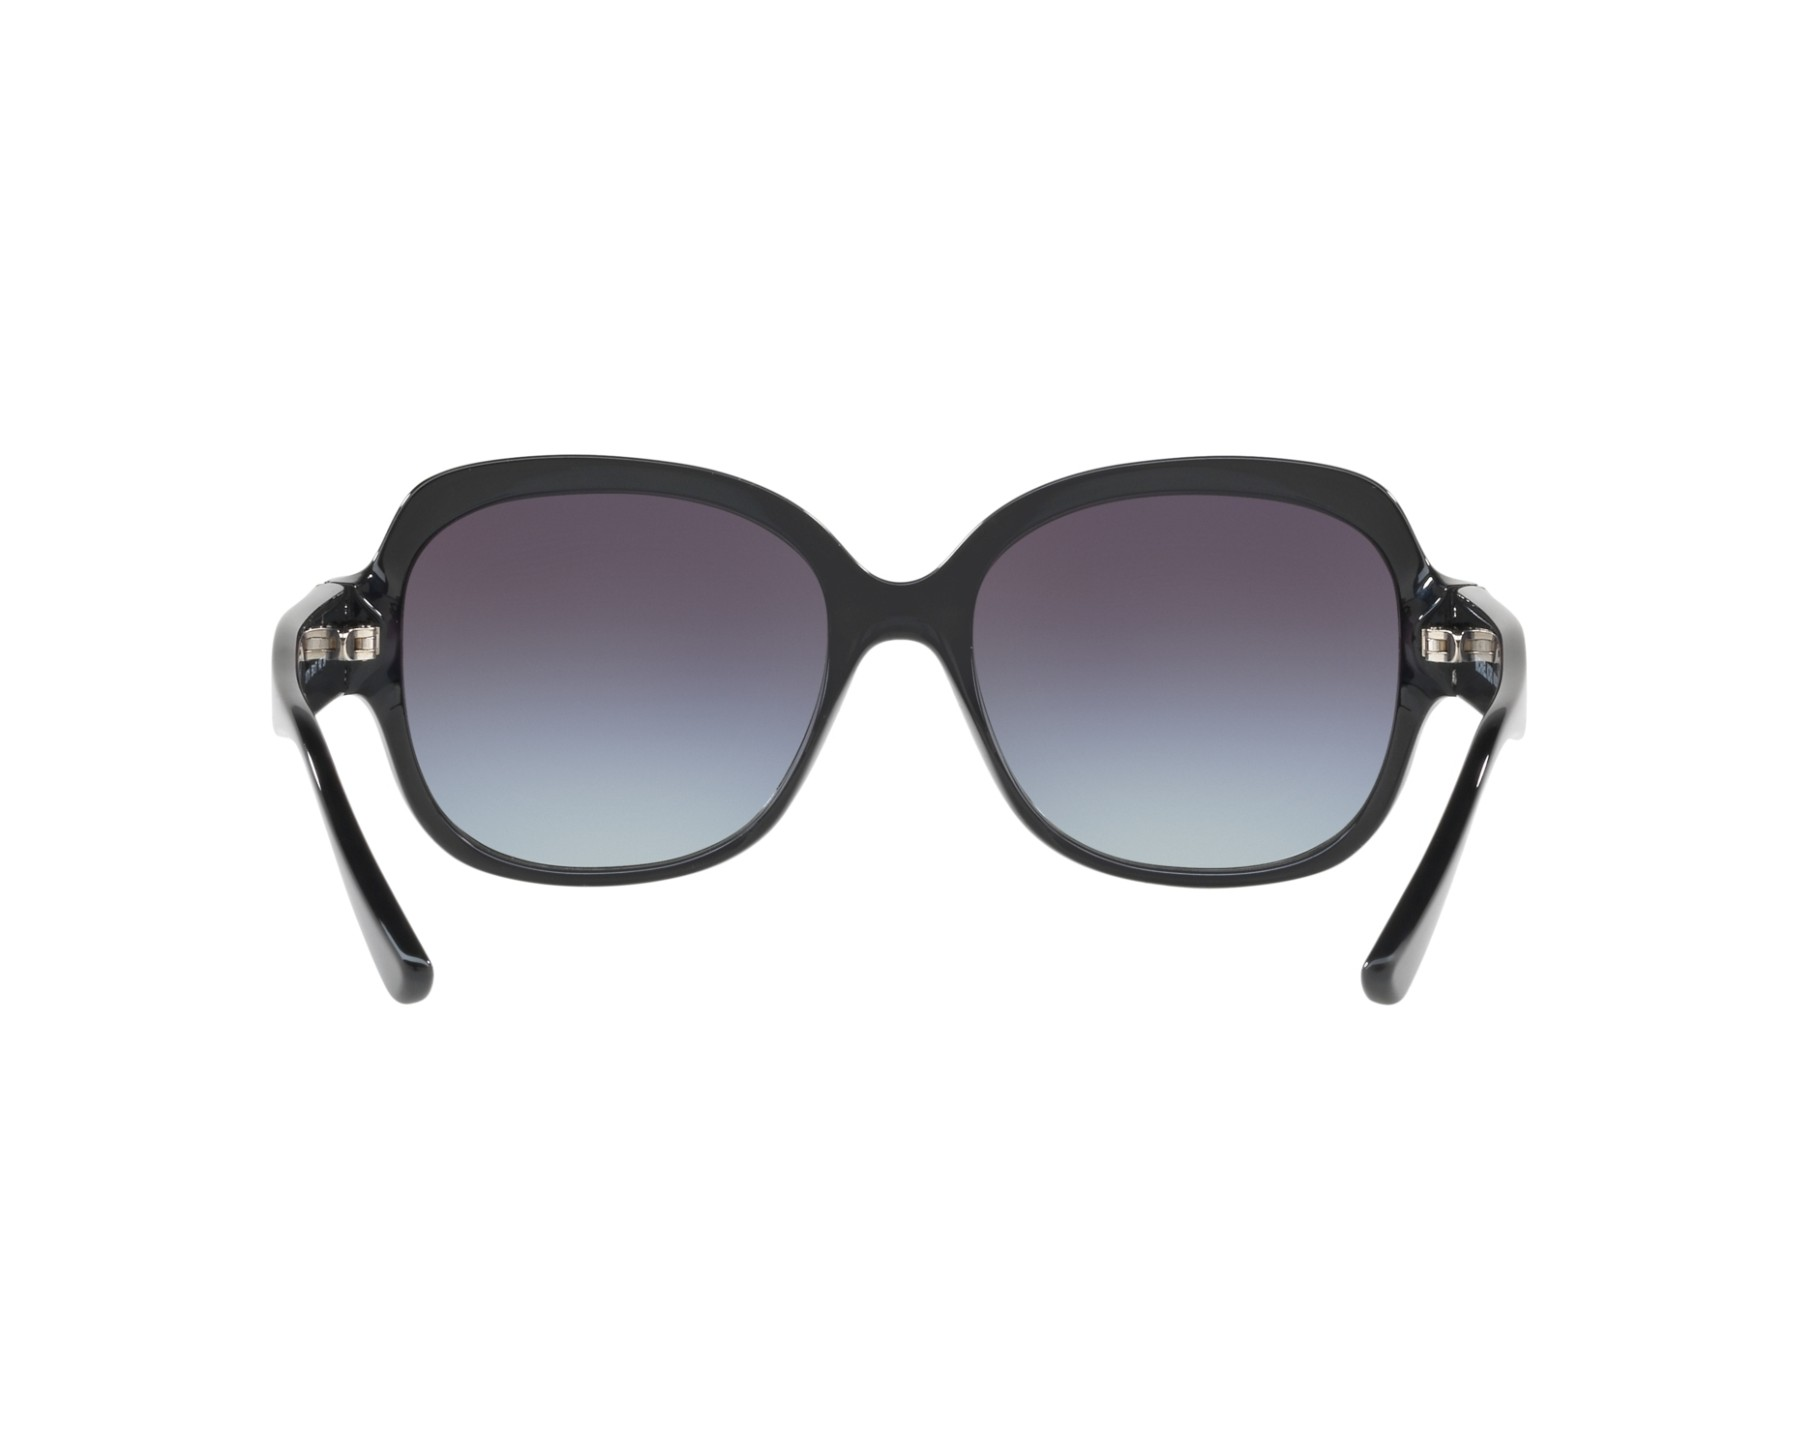 b9adf881e6 Sunglasses Michael Kors MK-2055 317711 - Black 360 degree view 7